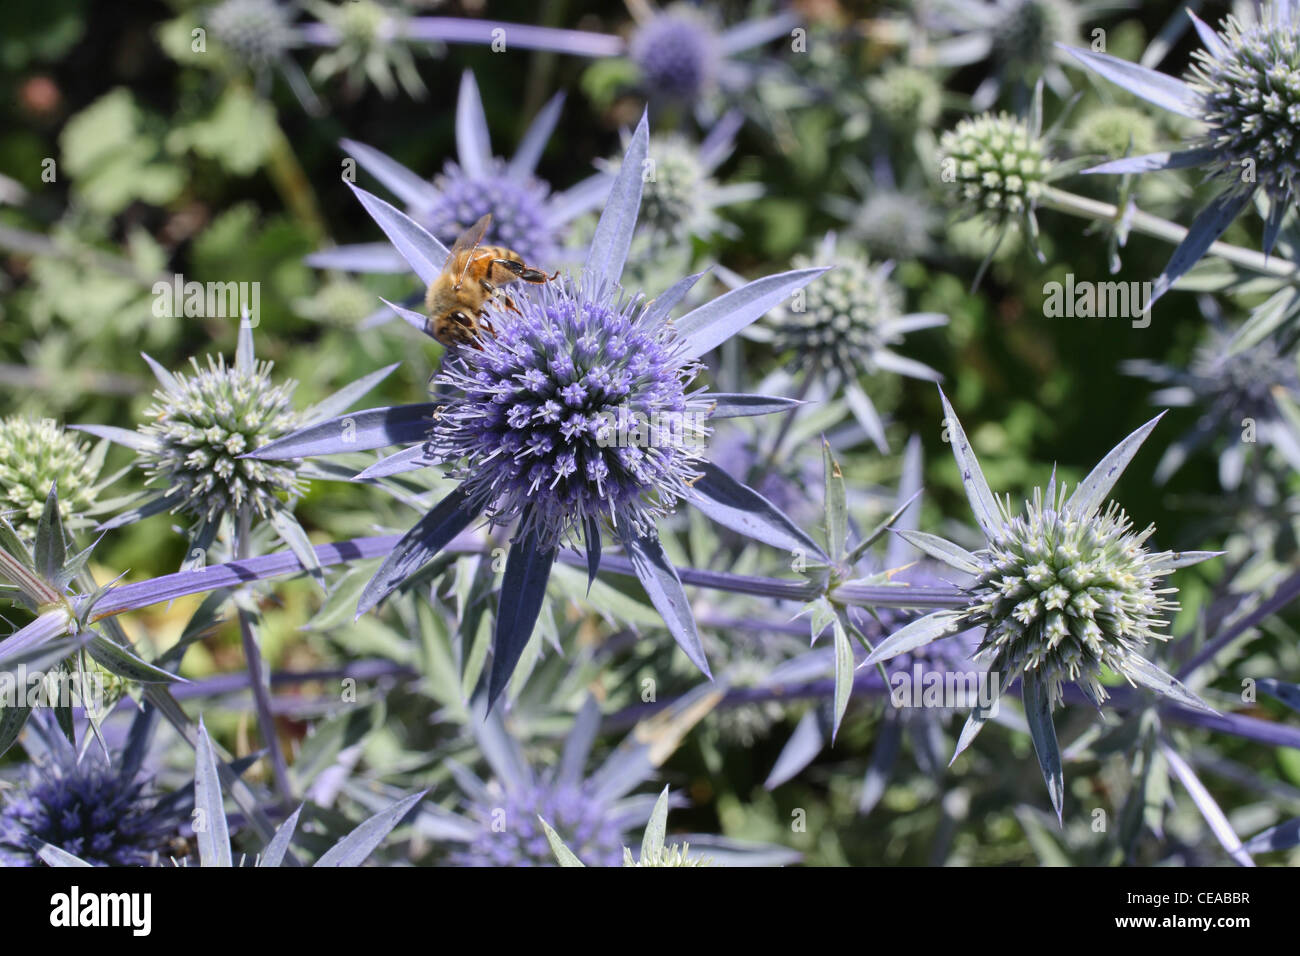 spiky purple and green flowers with bee collecting pollen - Stock Image